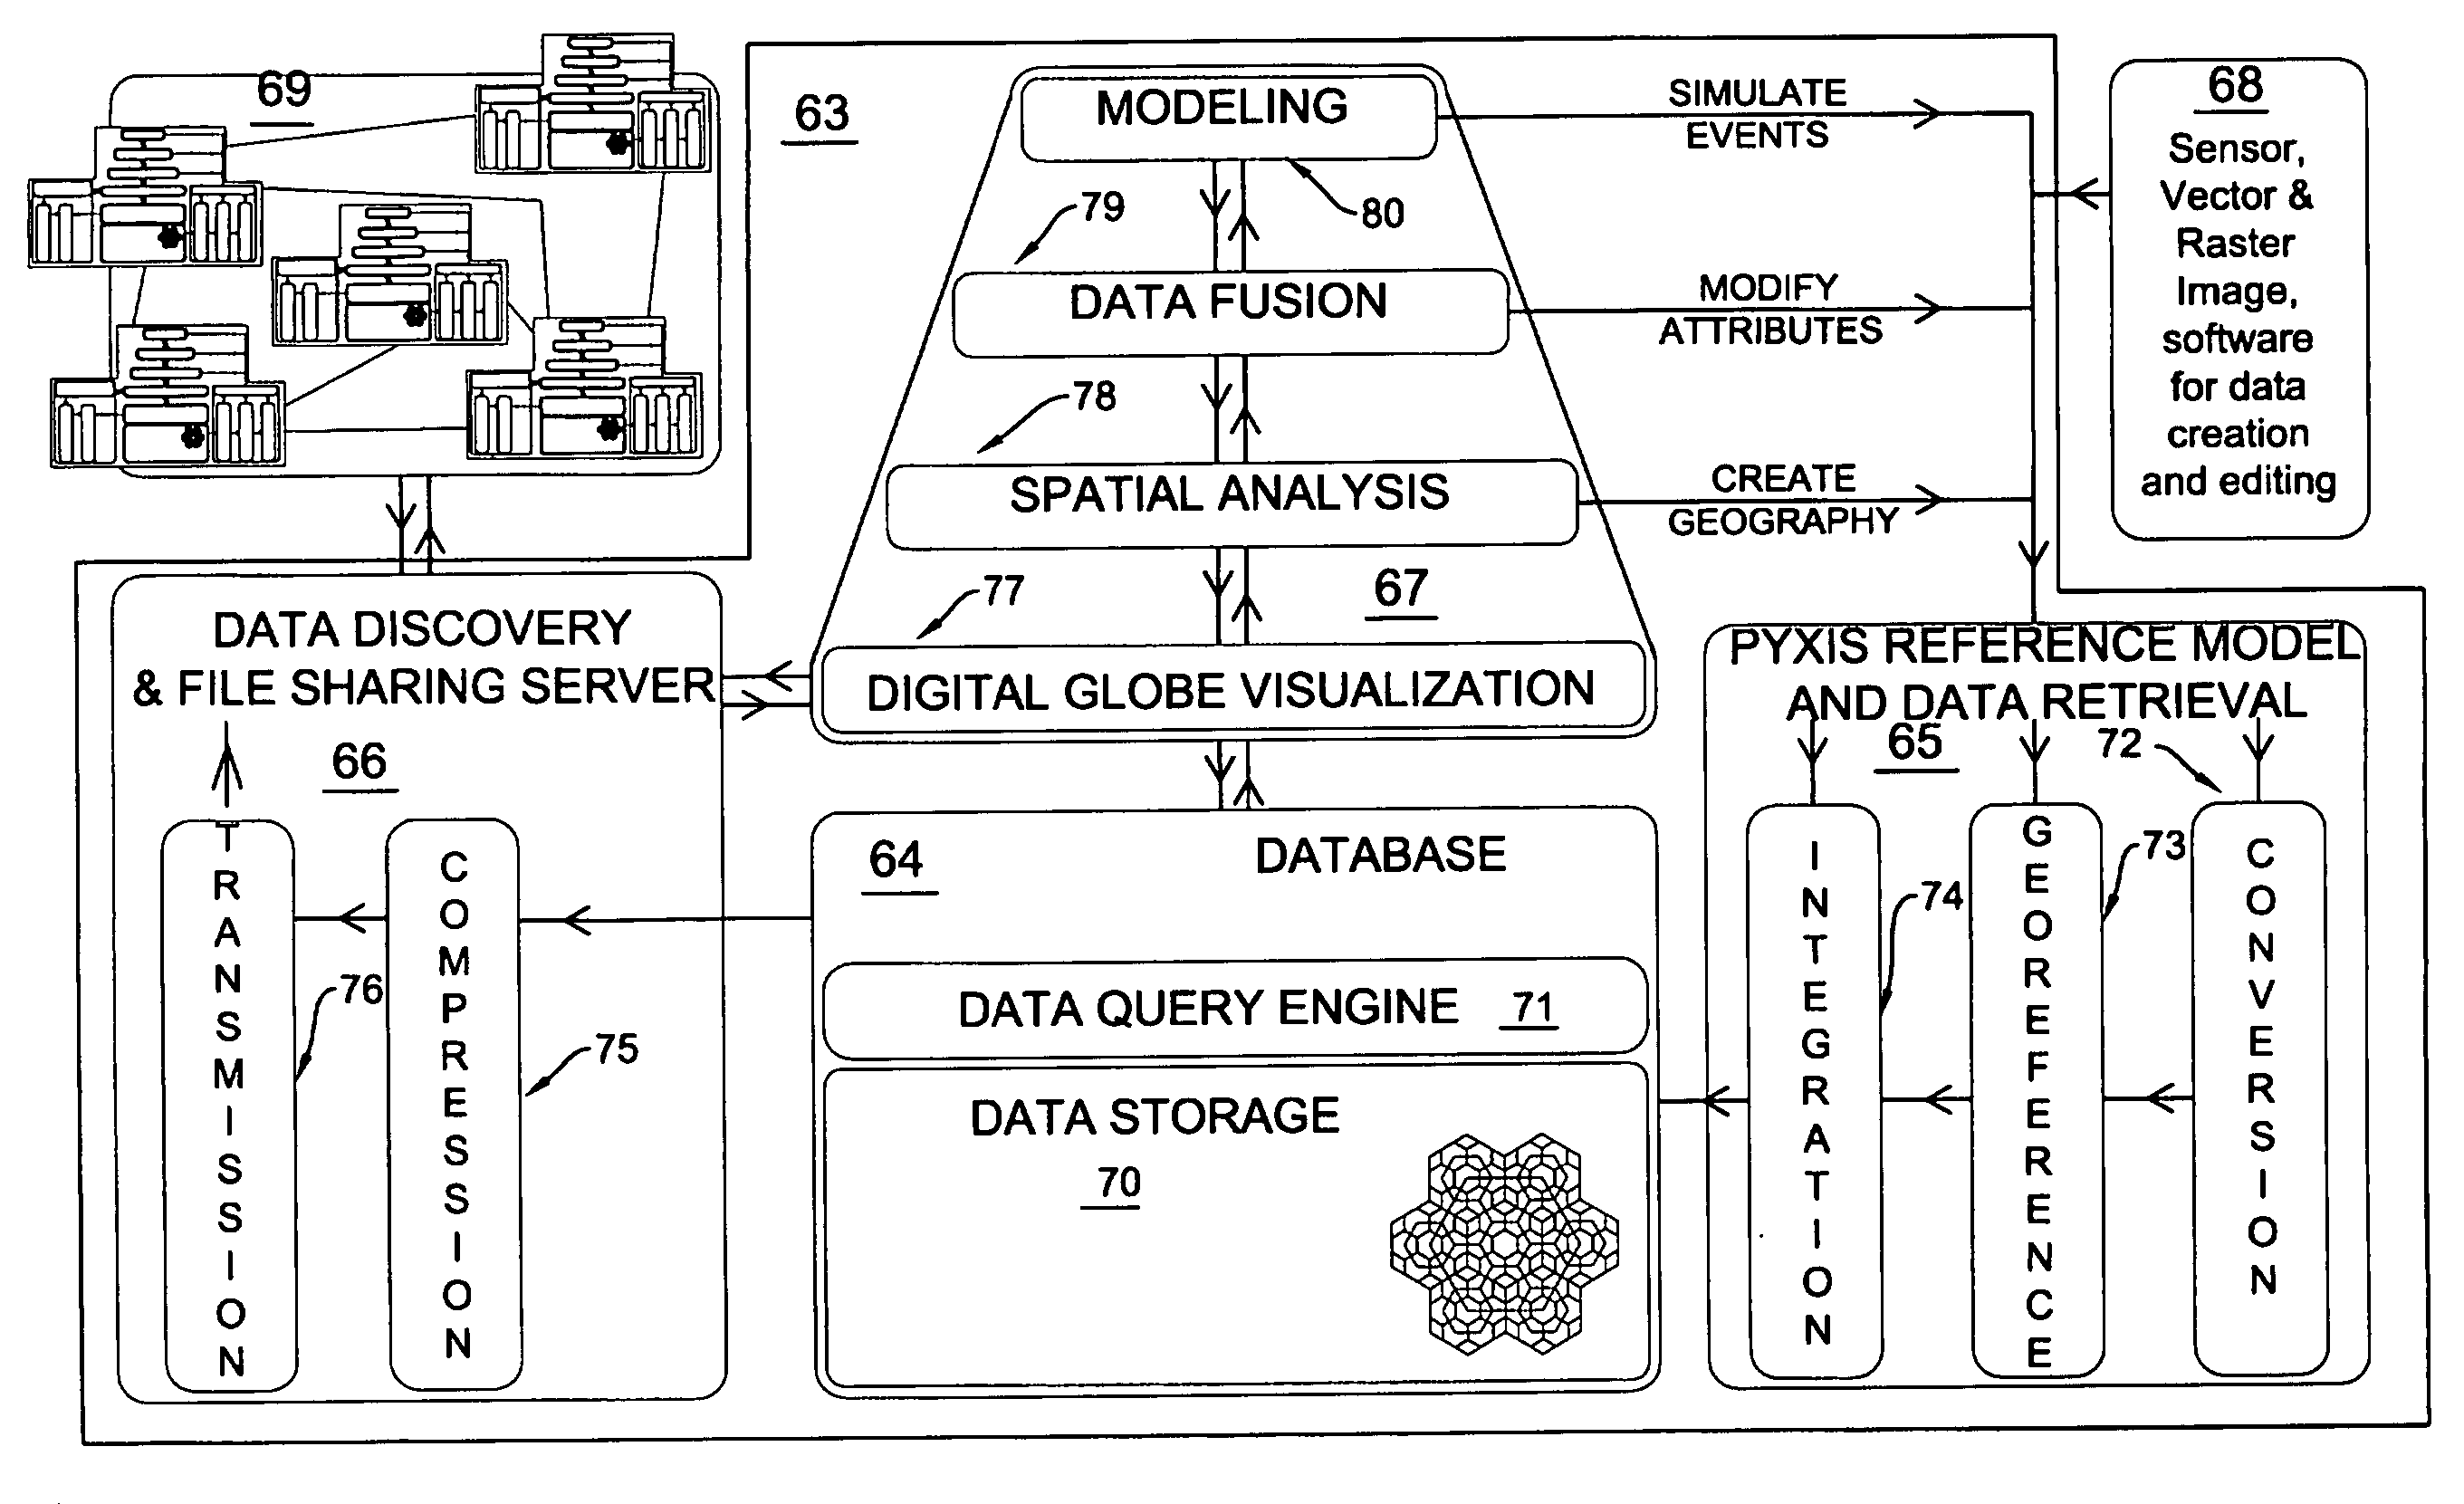 storing and indexing spatial data in Cppsis2013a assist in the storage and retrieval of spatial data 12 data index is used to maintain data storage according to organisational, legal and spatial data requirements 13 administrative and legal requirements for data storage.